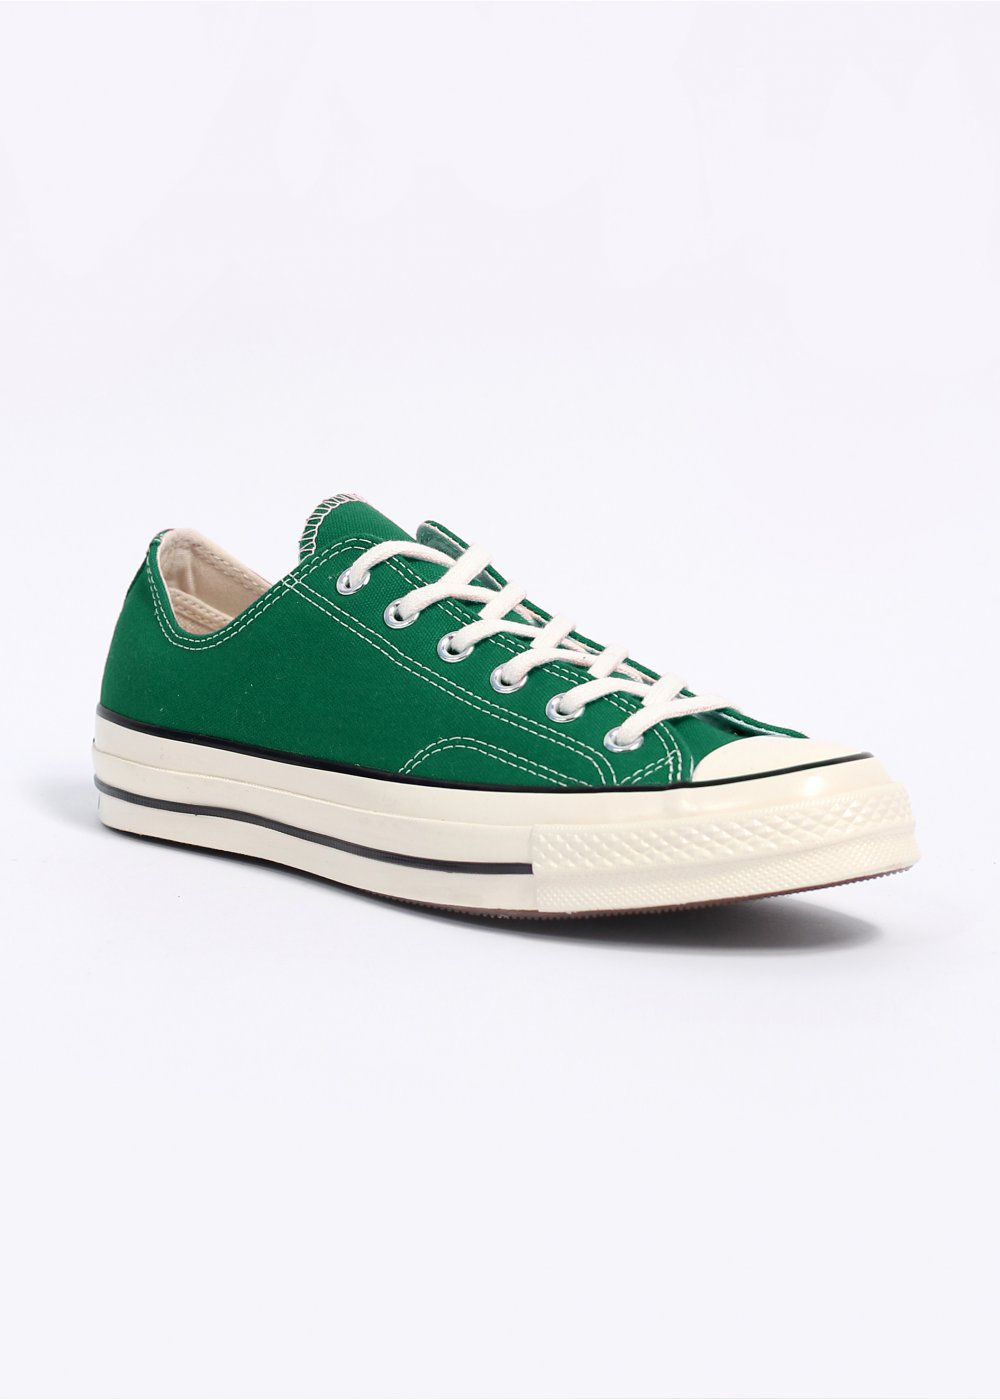 Converse chuck taylor 70 39 s low amazon green for Converse all star amazon